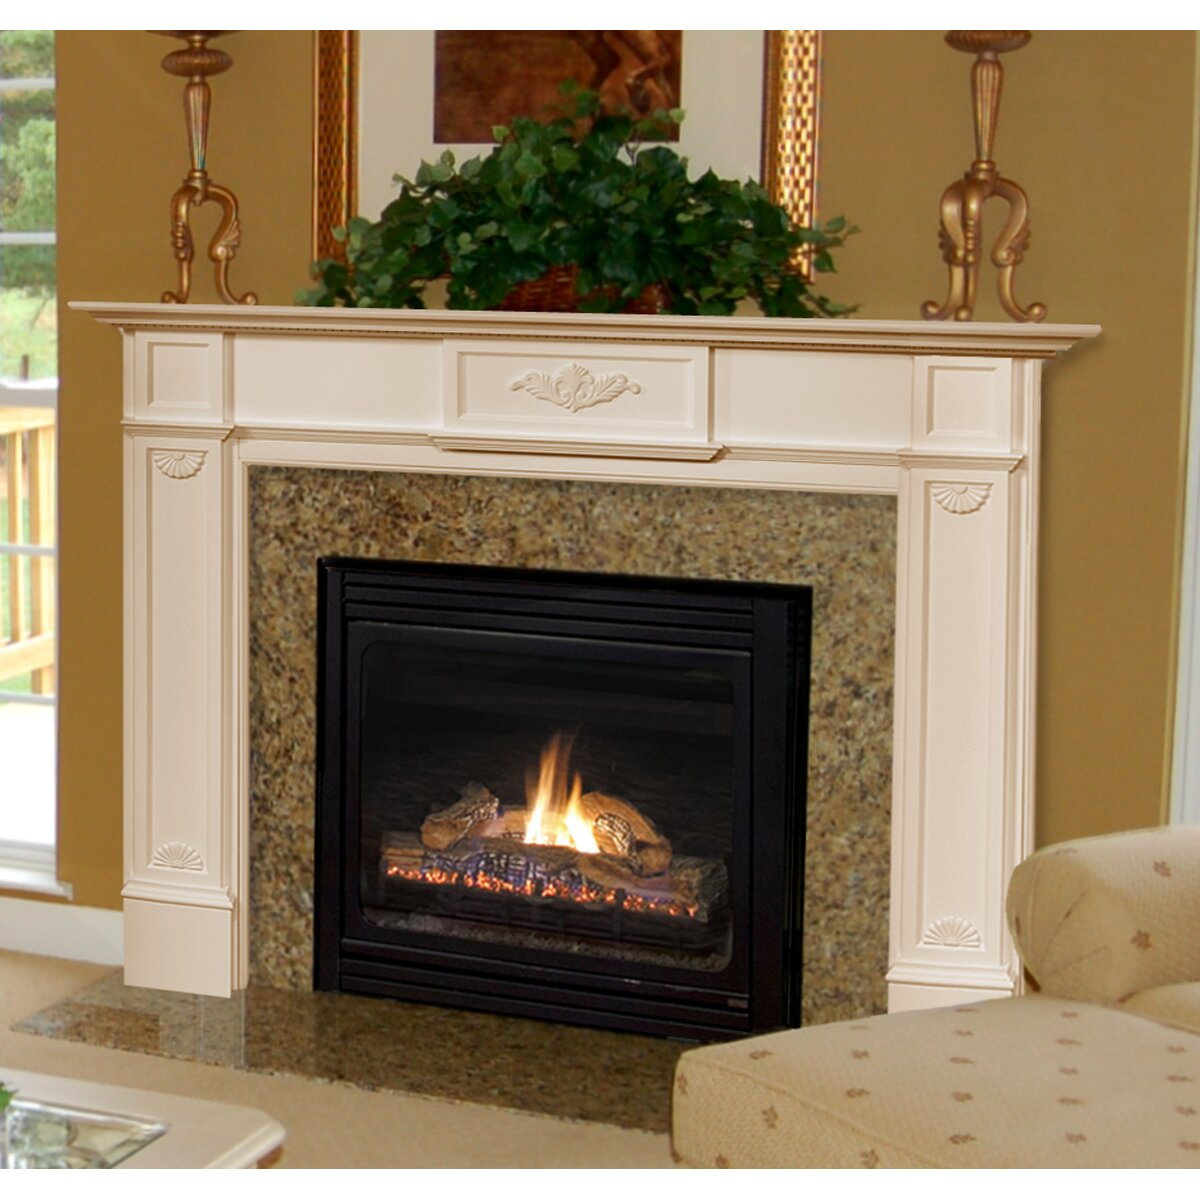 Pearl Mantels 56 Monticello Fireplace Mantel Surround